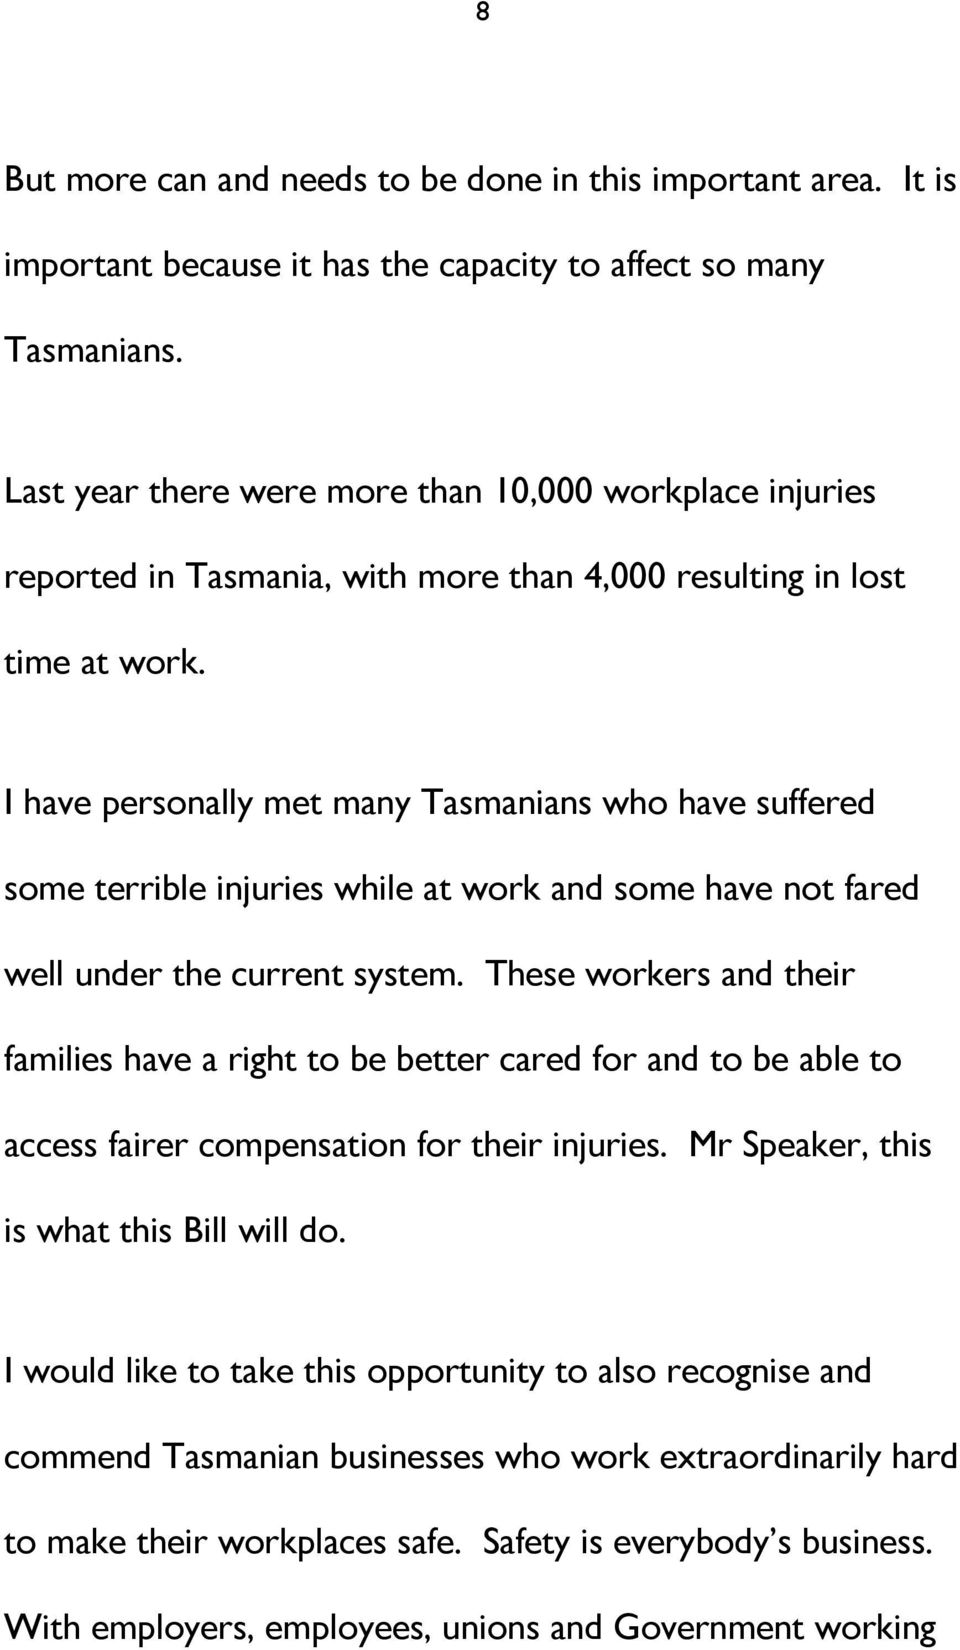 I have personally met many Tasmanians who have suffered some terrible injuries while at work and some have not fared well under the current system.